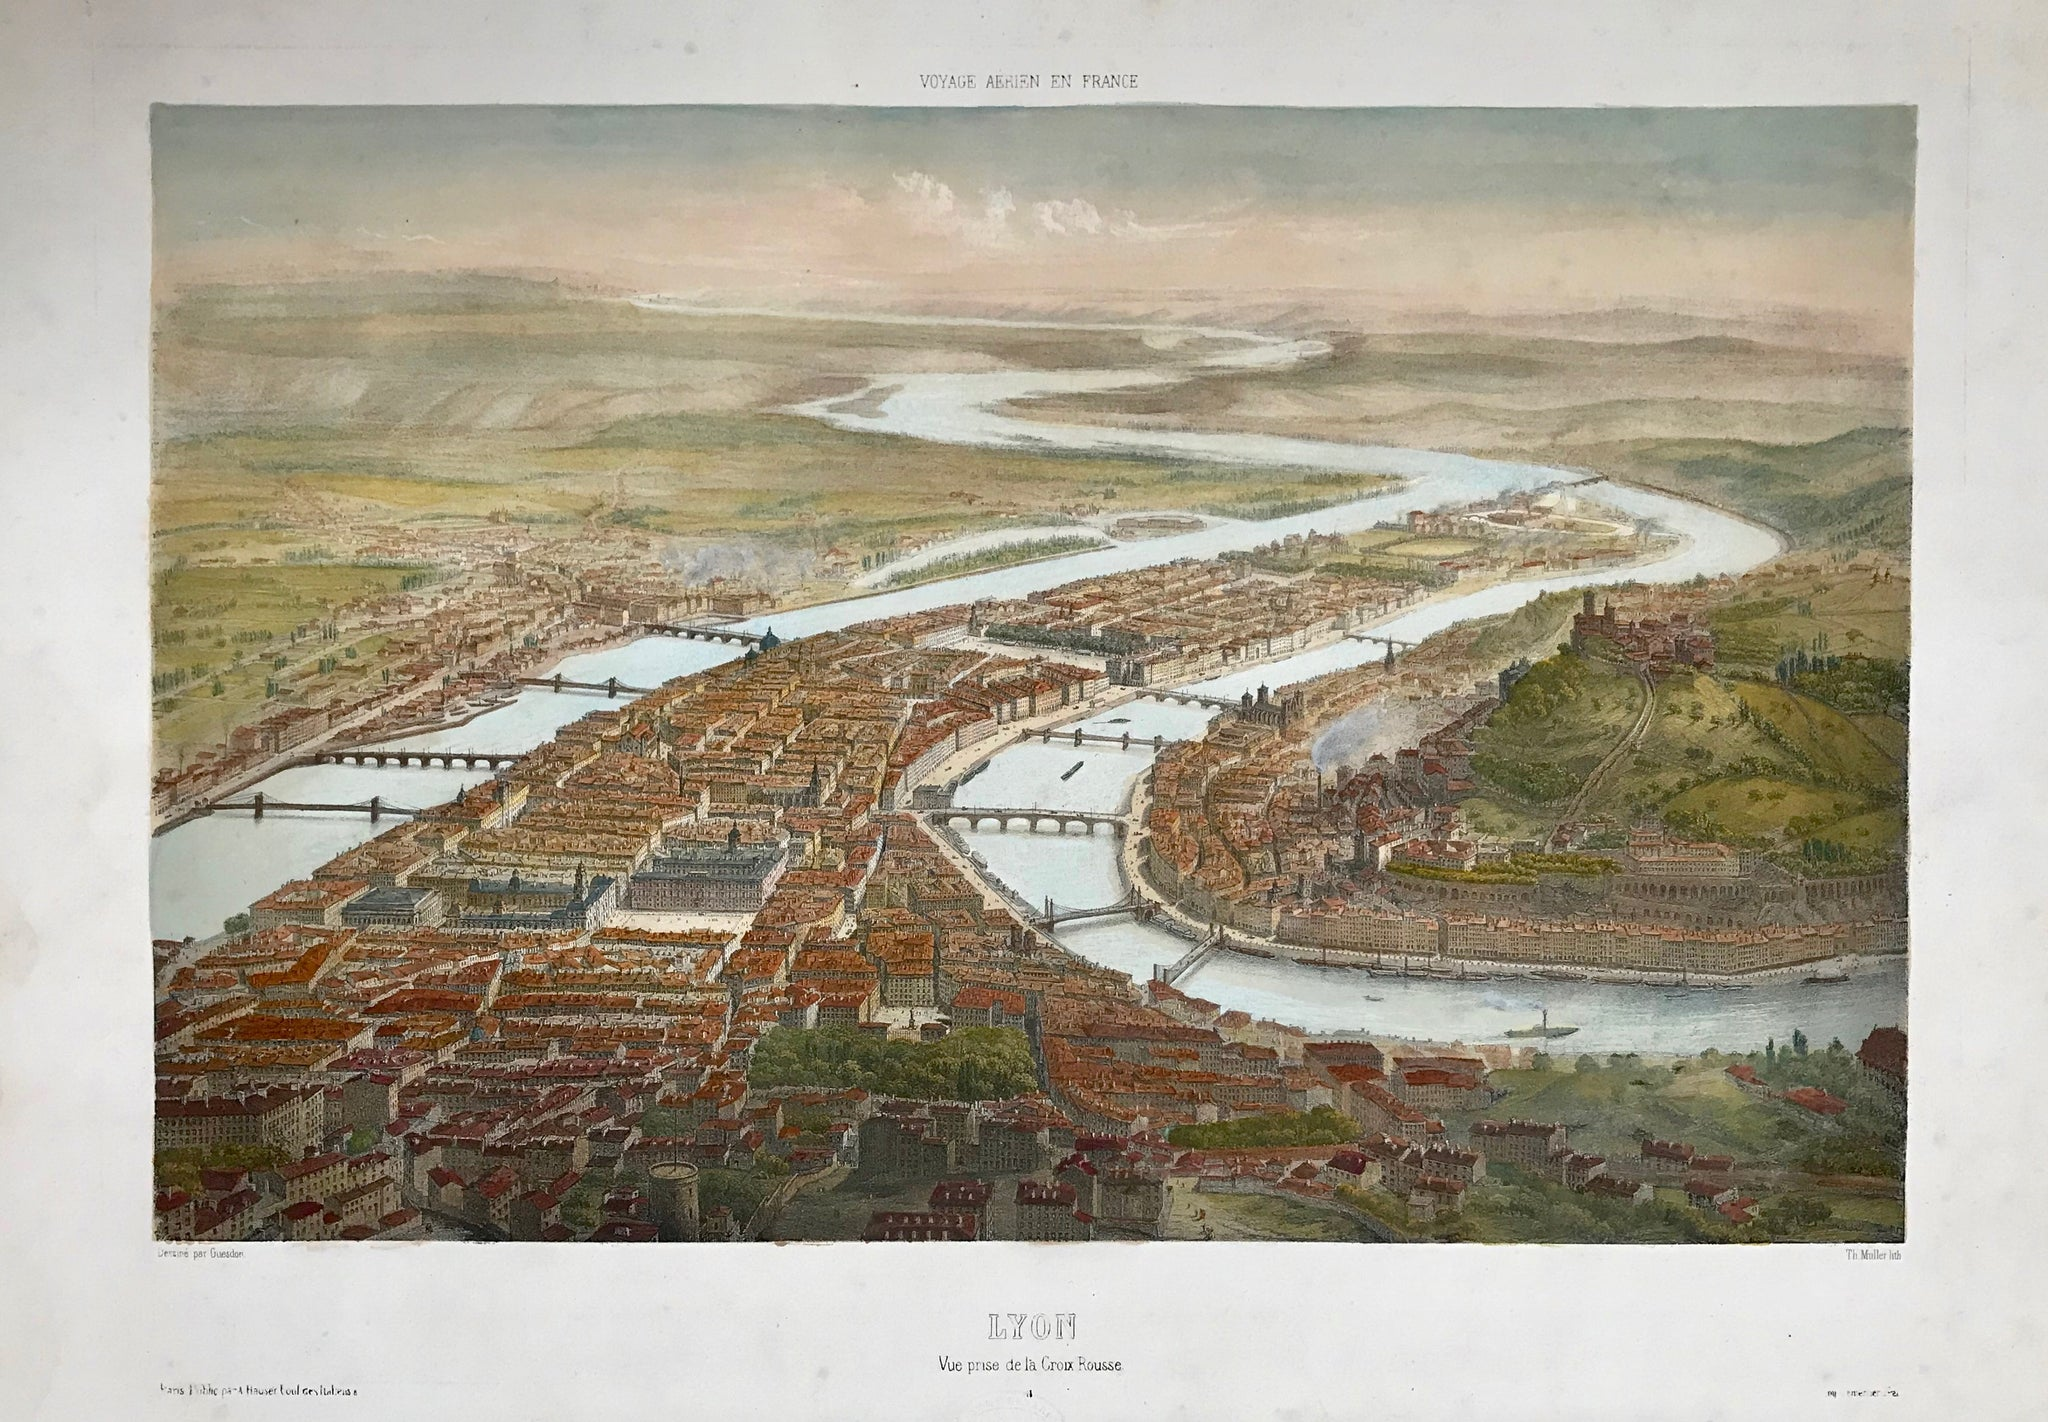 """Lyon - Vue prise de la Croix Rousse""  Hand-colored lithograph by Theodore Muller (1819-1879)  after the drawing by Alfred Guesdon (1808-1876)  An impressive bird's eye view of the City of Lyon.  Published in the series: ""Voyage Aerien en France""  By Lemercier. Paris, 1849 - ca. 1860"